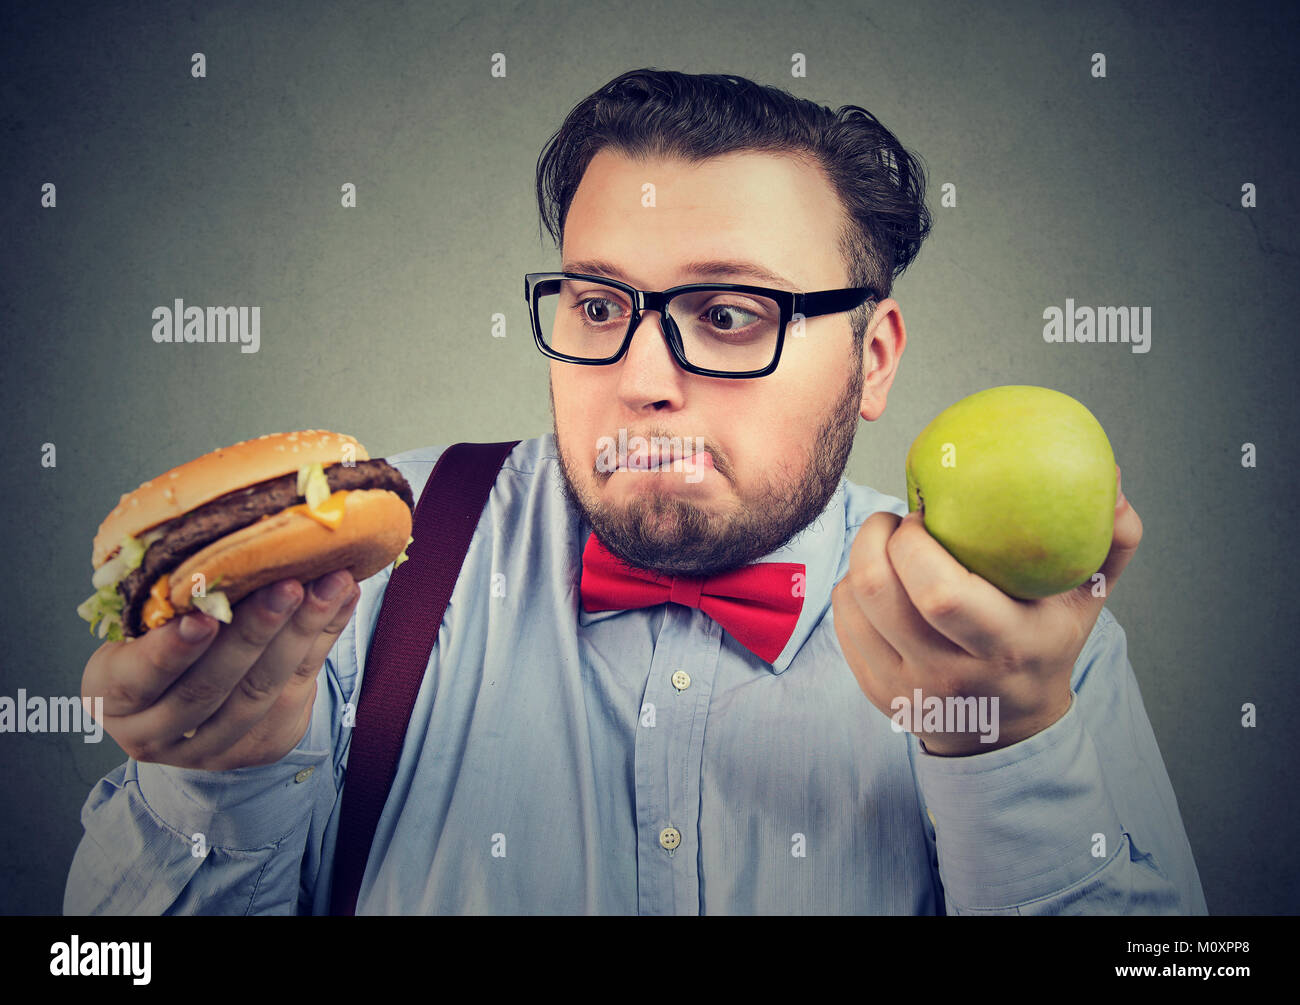 Chubby man in eyeglasses craving delicious burger instead of green apple looking confused. Stock Photo